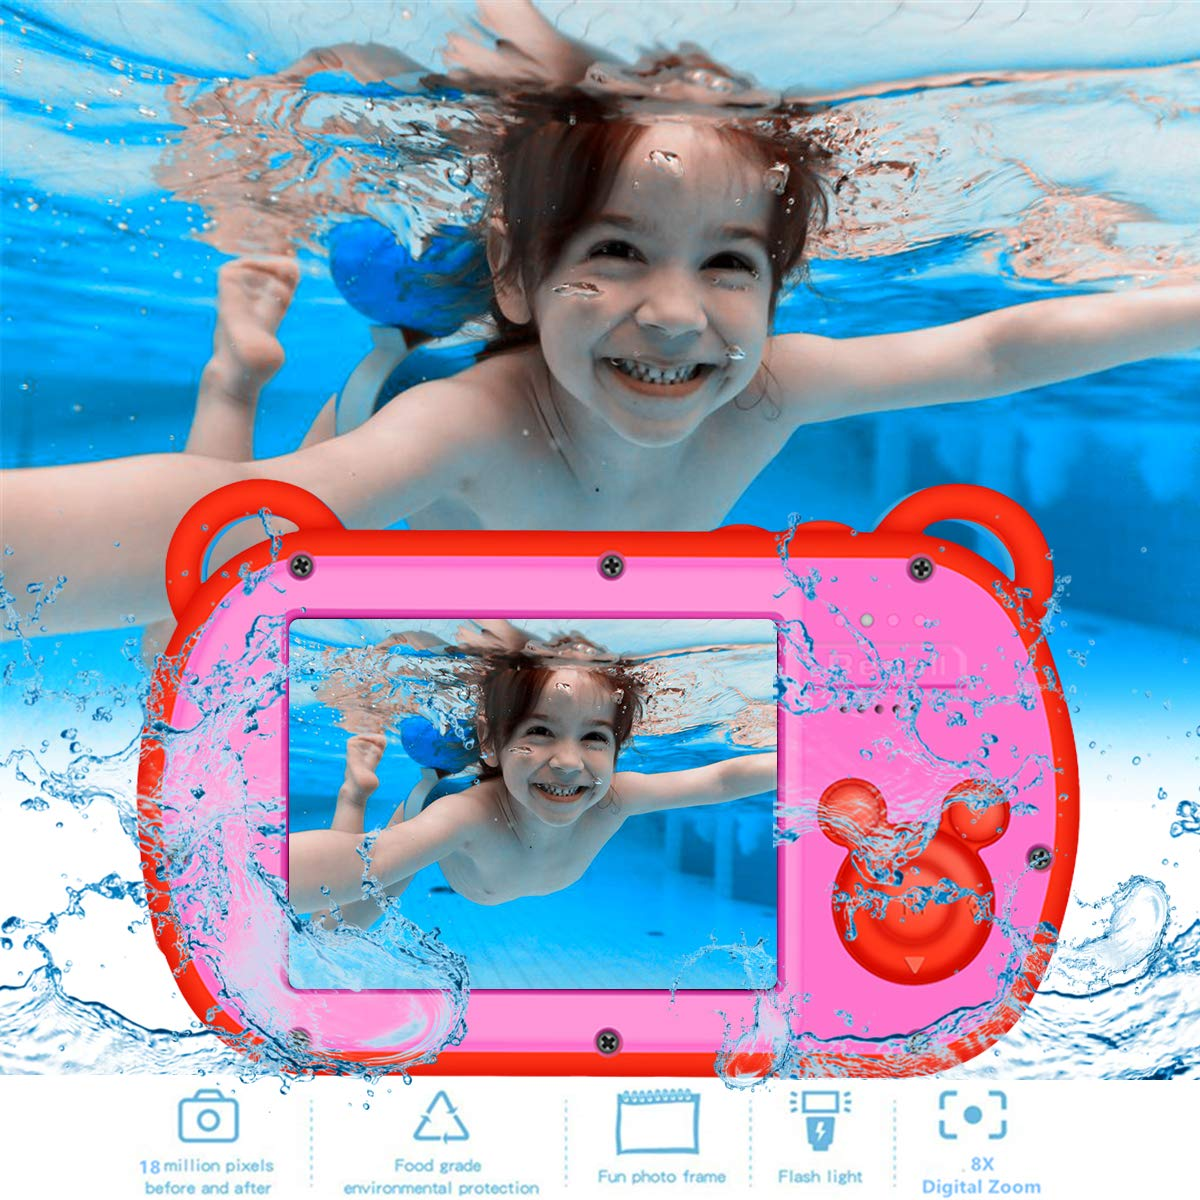 Underwater Kids Camera, HD I080P 8X Digital Zoom,2.7'' Screen Children's Camera with Flash,Preschool Camera Toys Waterproof Camera for kids by CamKing